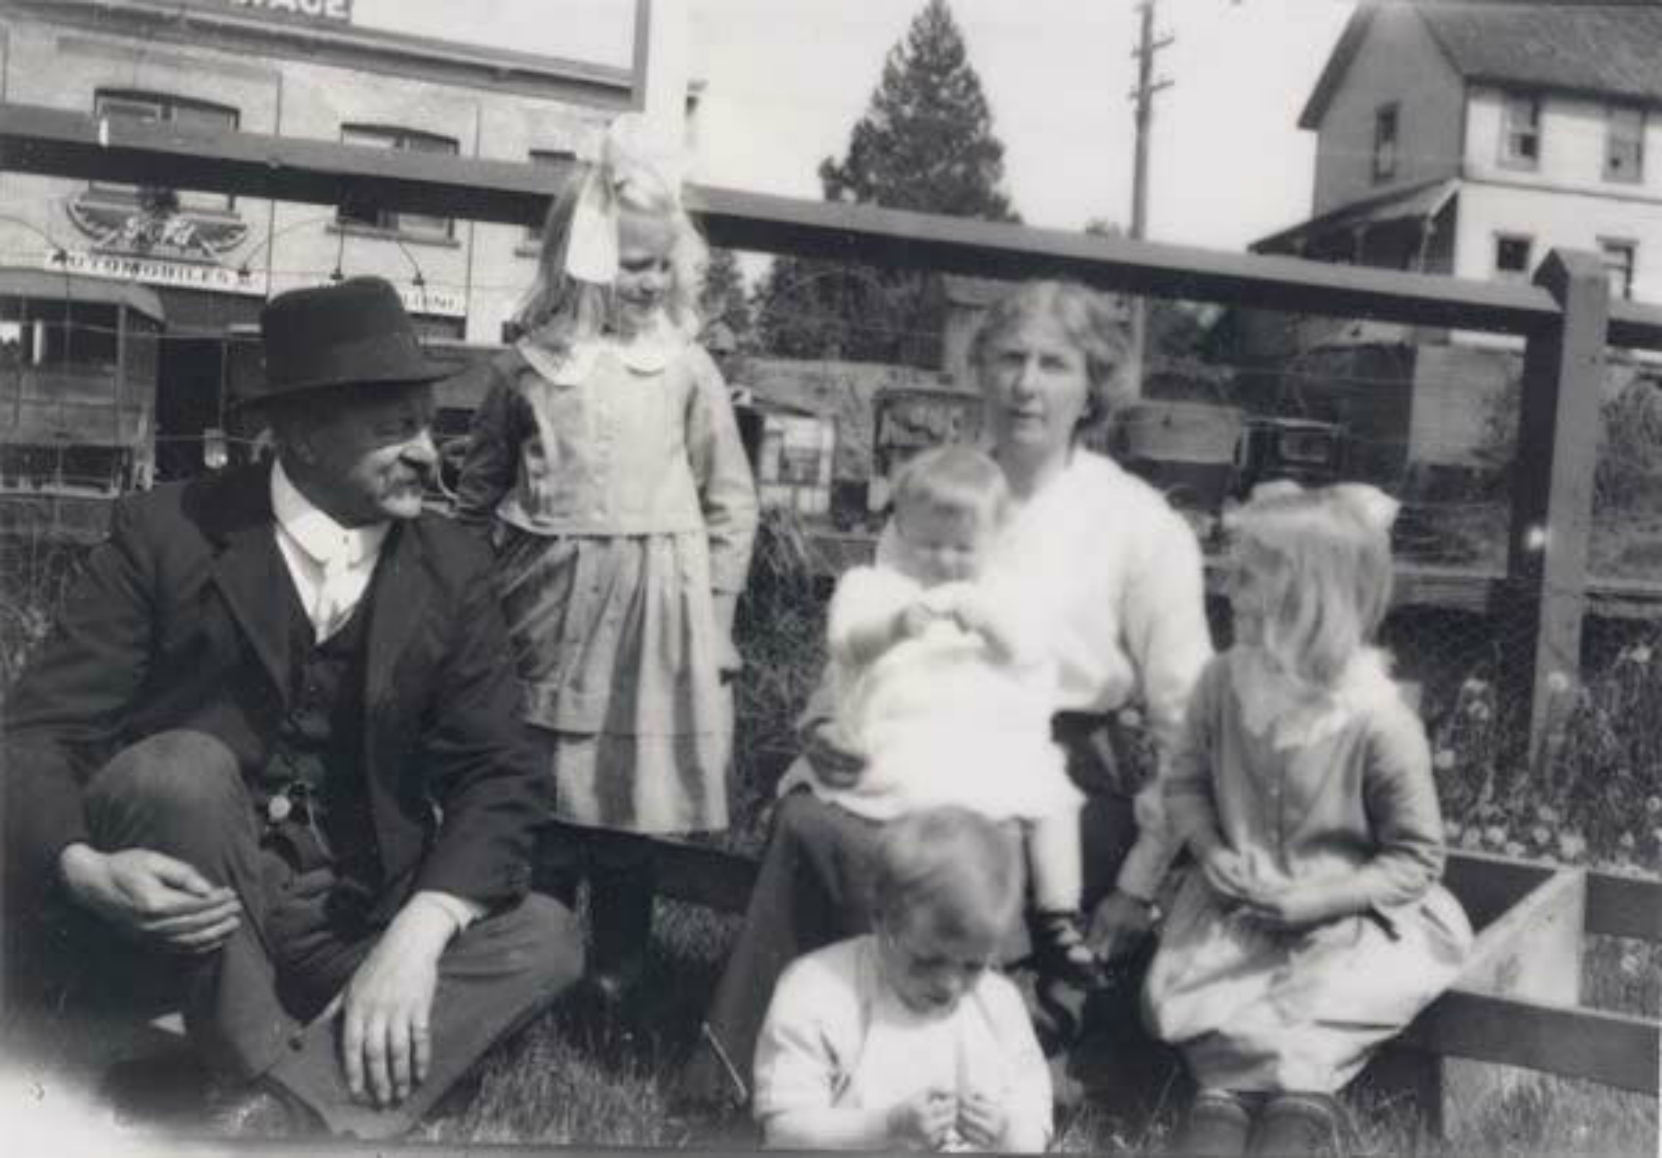 Roland Clayton Fawcett and his family outside the E&N Station, Duncan, 1922. The Duncan Garage is in the left background. The building on the right background is the Alderlea Hotel(now demolished) once owned by Charles Herbert Dickie. (Photo: Cowichan Valley Museum & Archives)